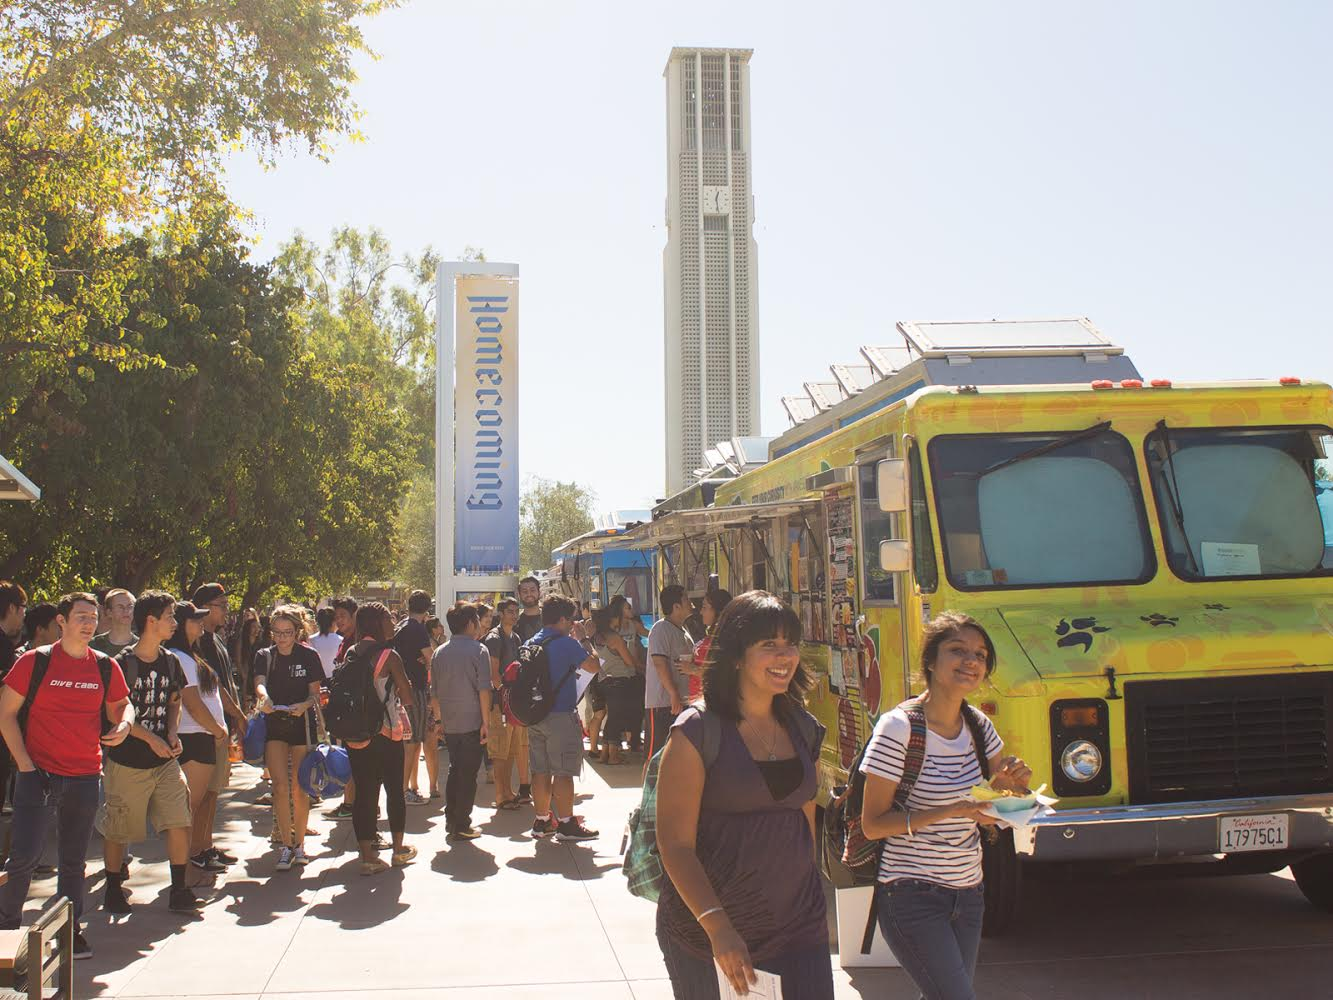 Food Trucks Rolling in a Fourth Time at Annual Festival